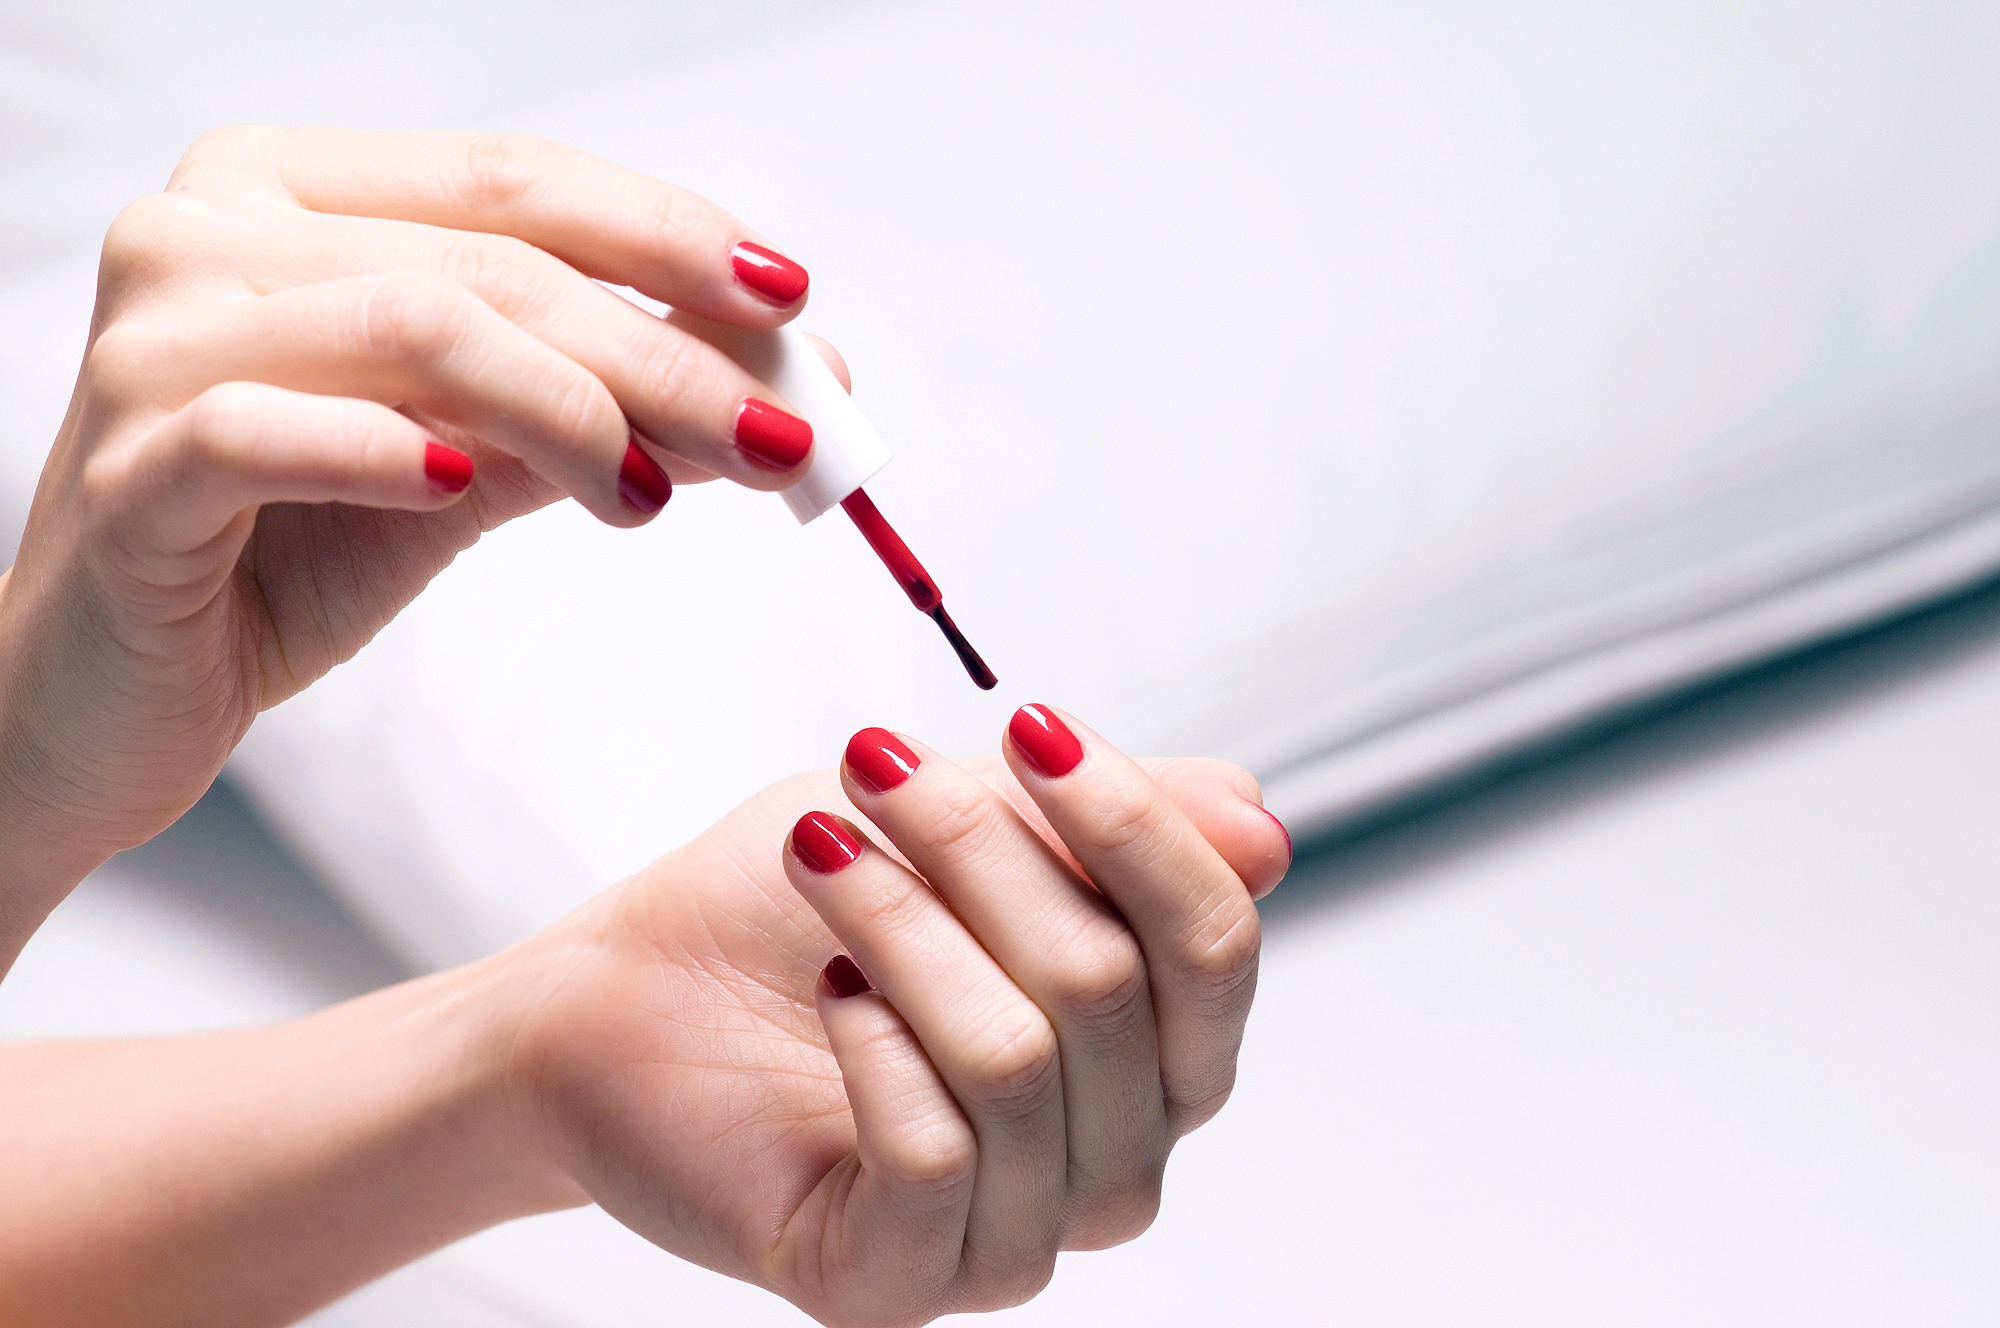 3 Tricks to Make Your Nail Polish Dry Faster